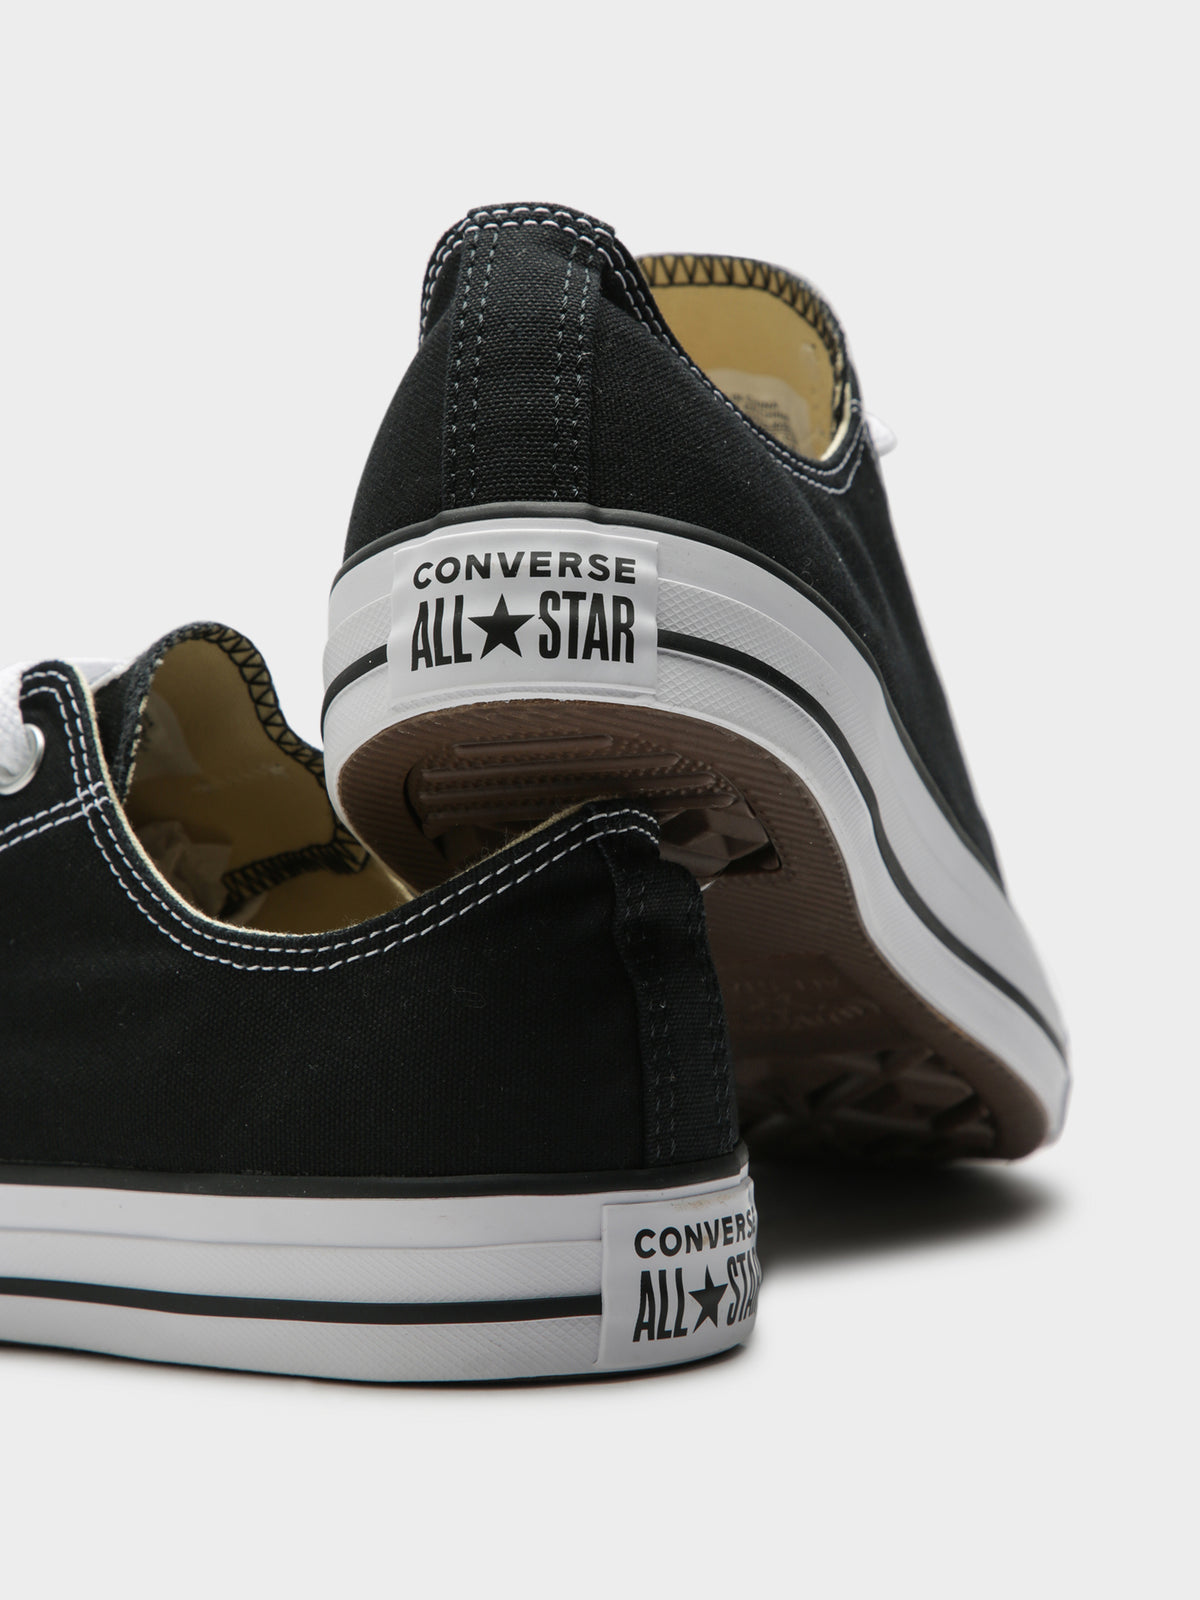 Unisex Chuck Taylor All Star Classic Low-Top Sneakers in Black